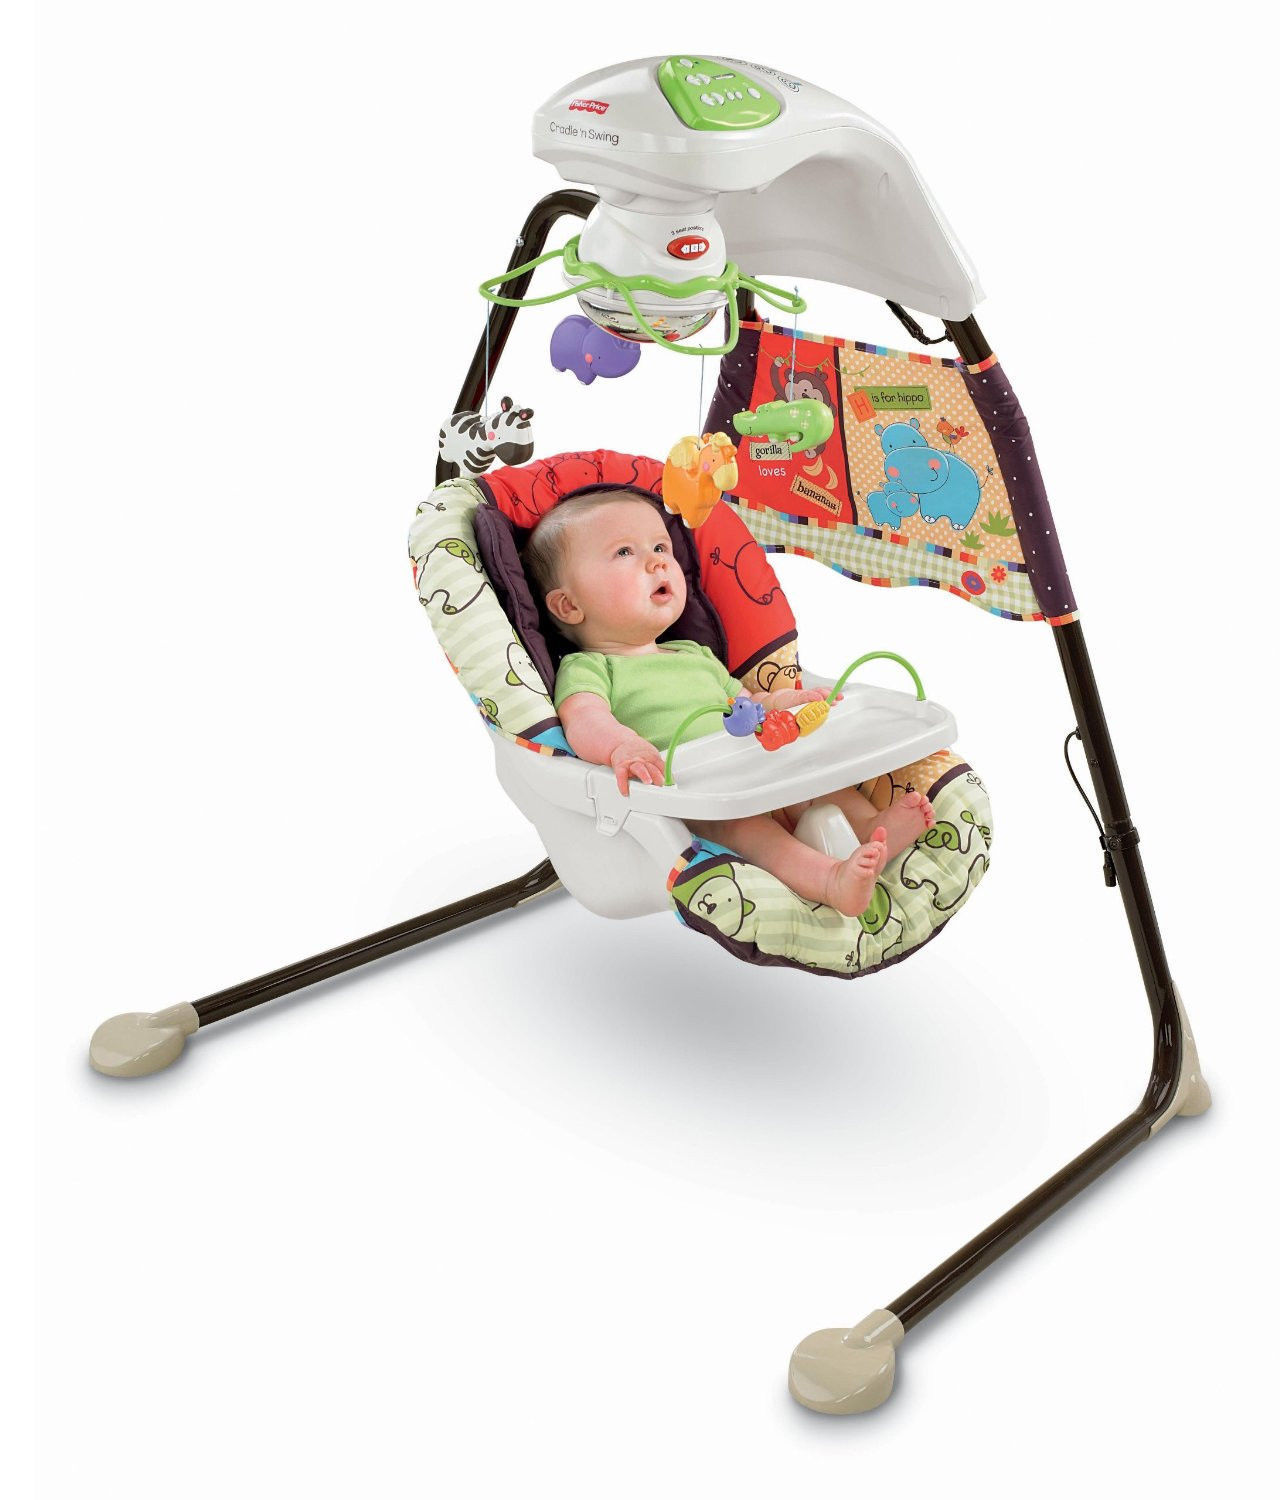 baby swing chair nz counter high table and chairs set fisher price cradle 1 customer review 31